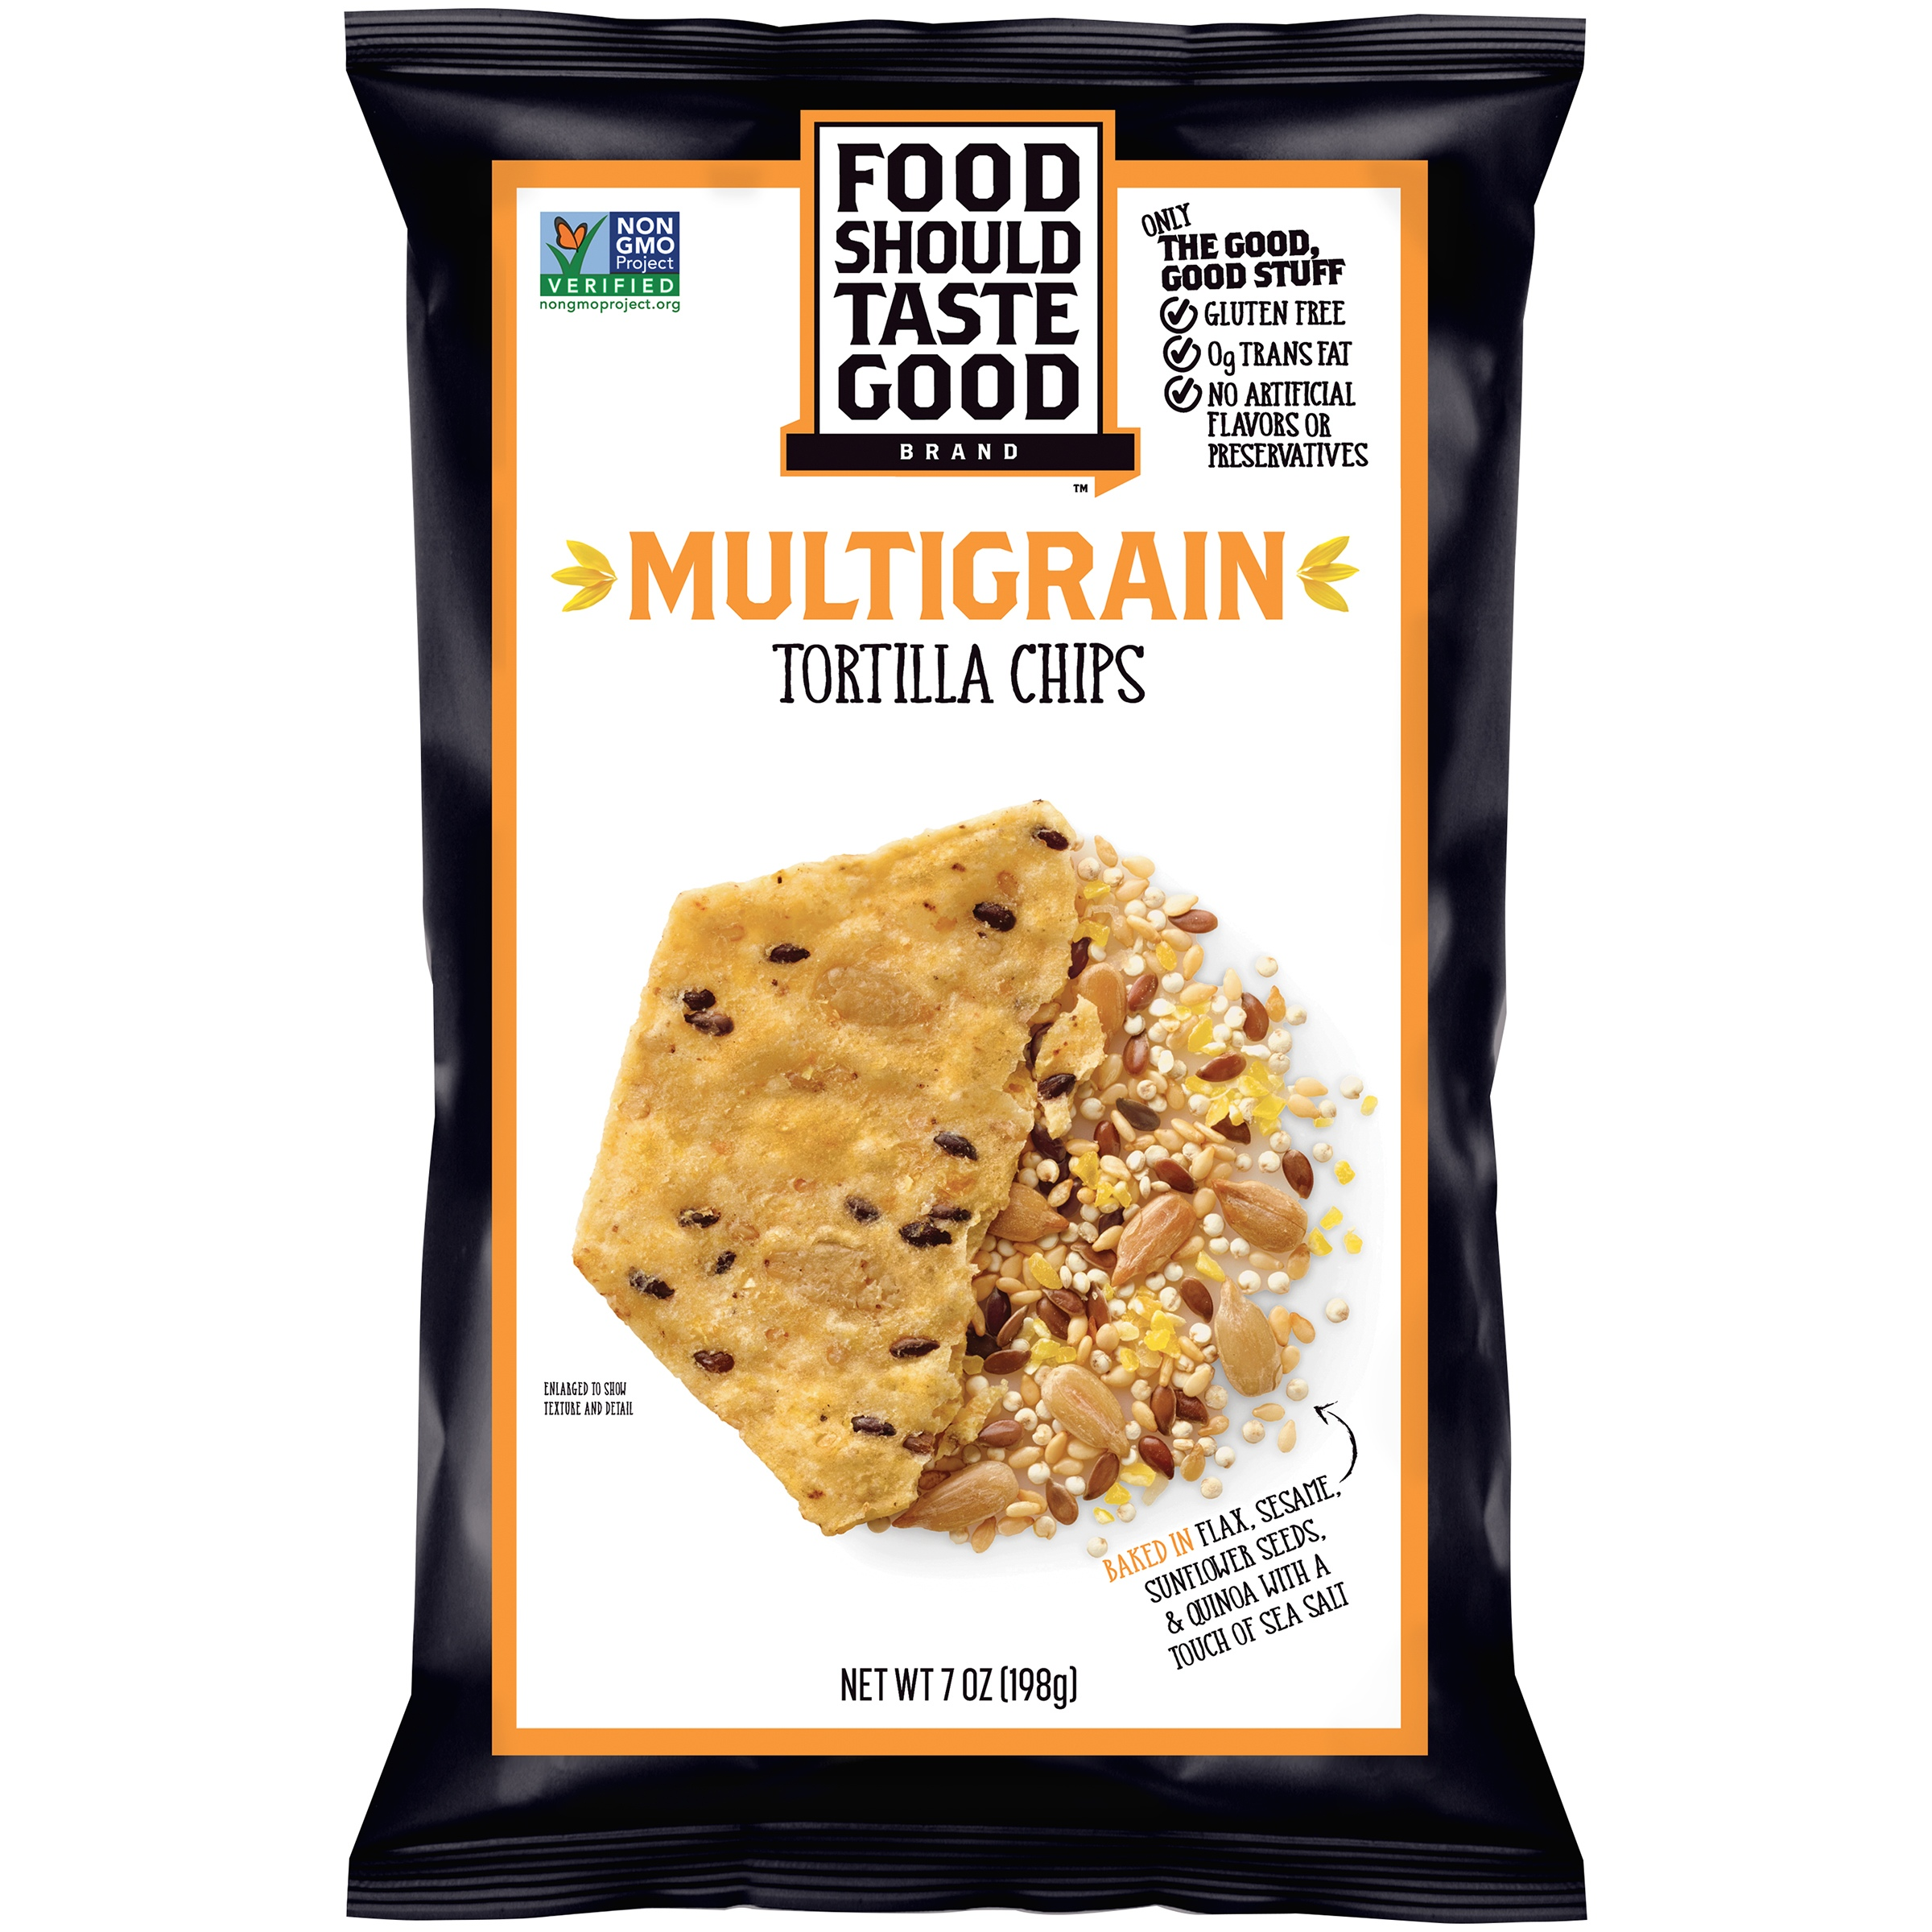 Food Should Taste Good Gluten Free Multigrain Tortilla Chips 7 oz. Bag by Food Should Taste Good, Inc.